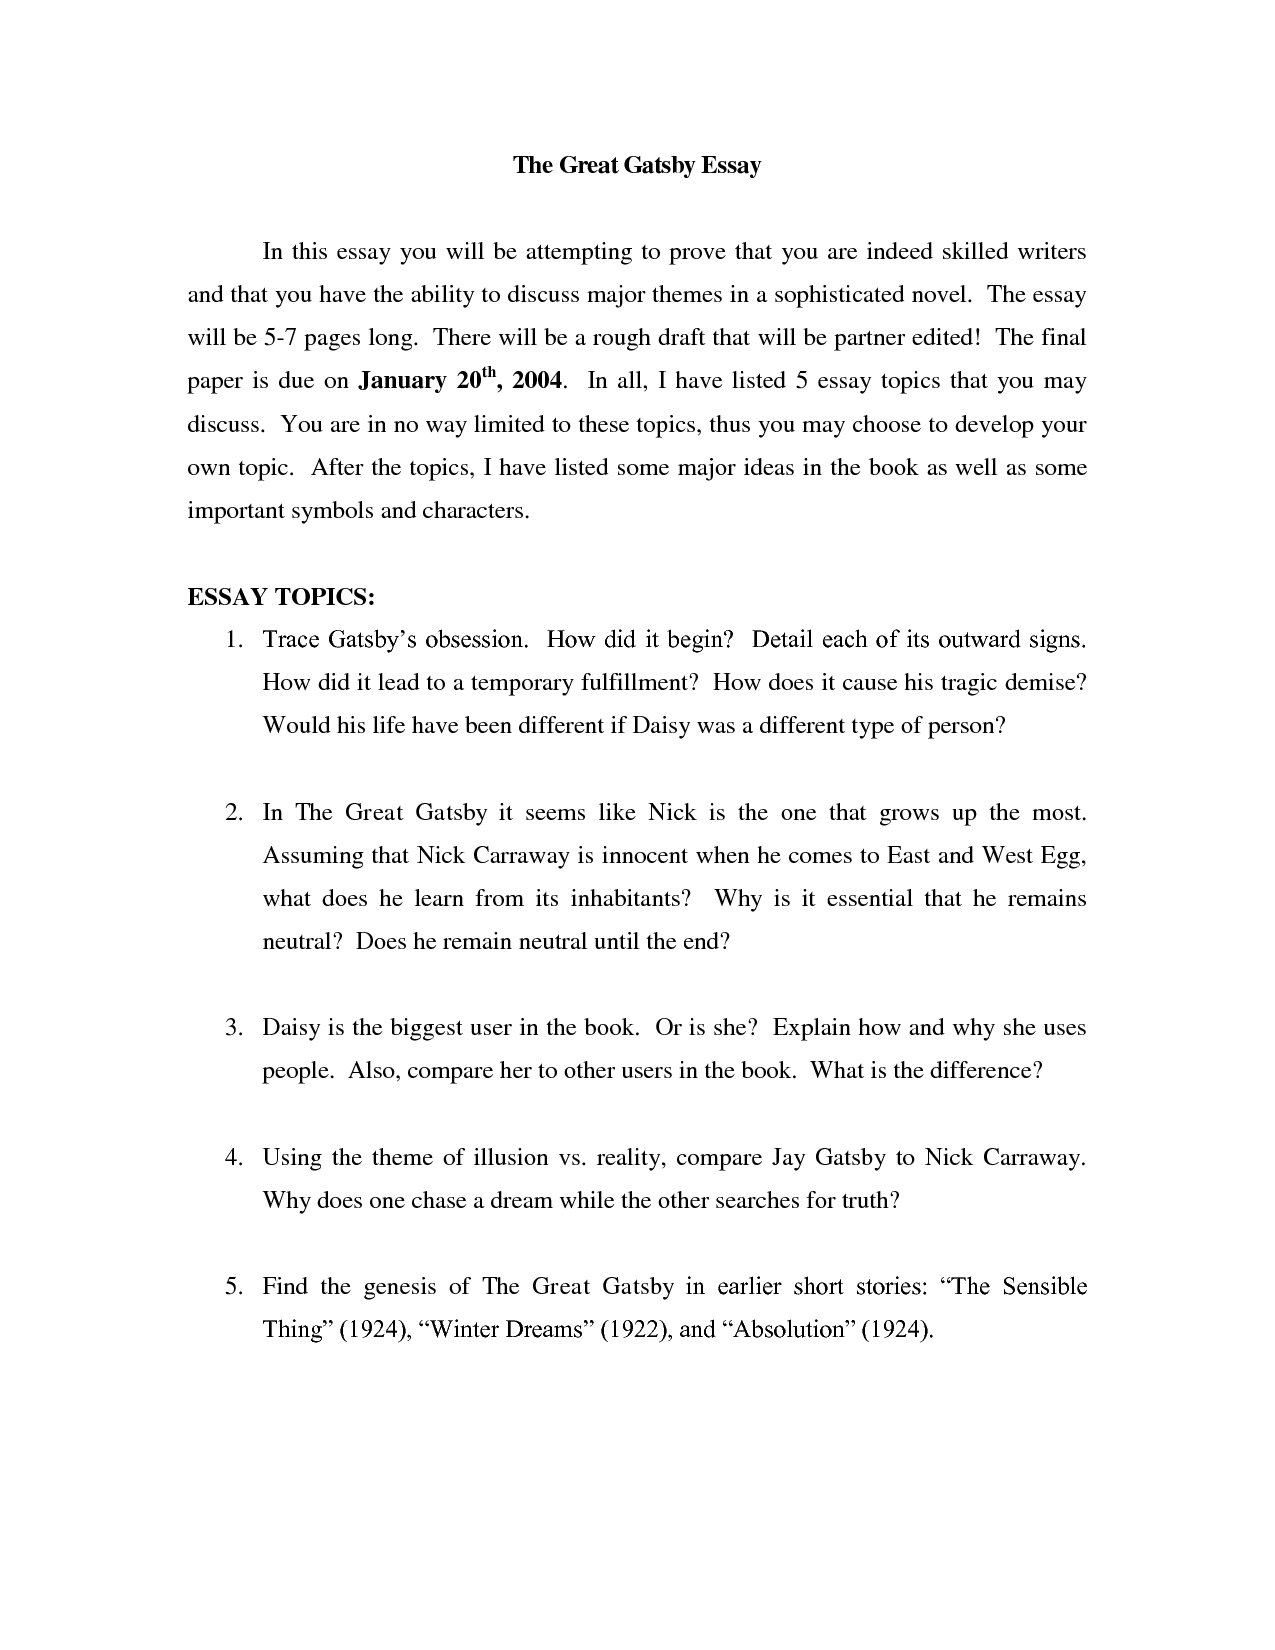 003 Essays On Cyber Bullying Best English Essay I Need An Trees Thesis Statement For The Great Gatsby Template 4ni Argumentative Topics Persuasive About Cyberbullying Unique Pdf Full